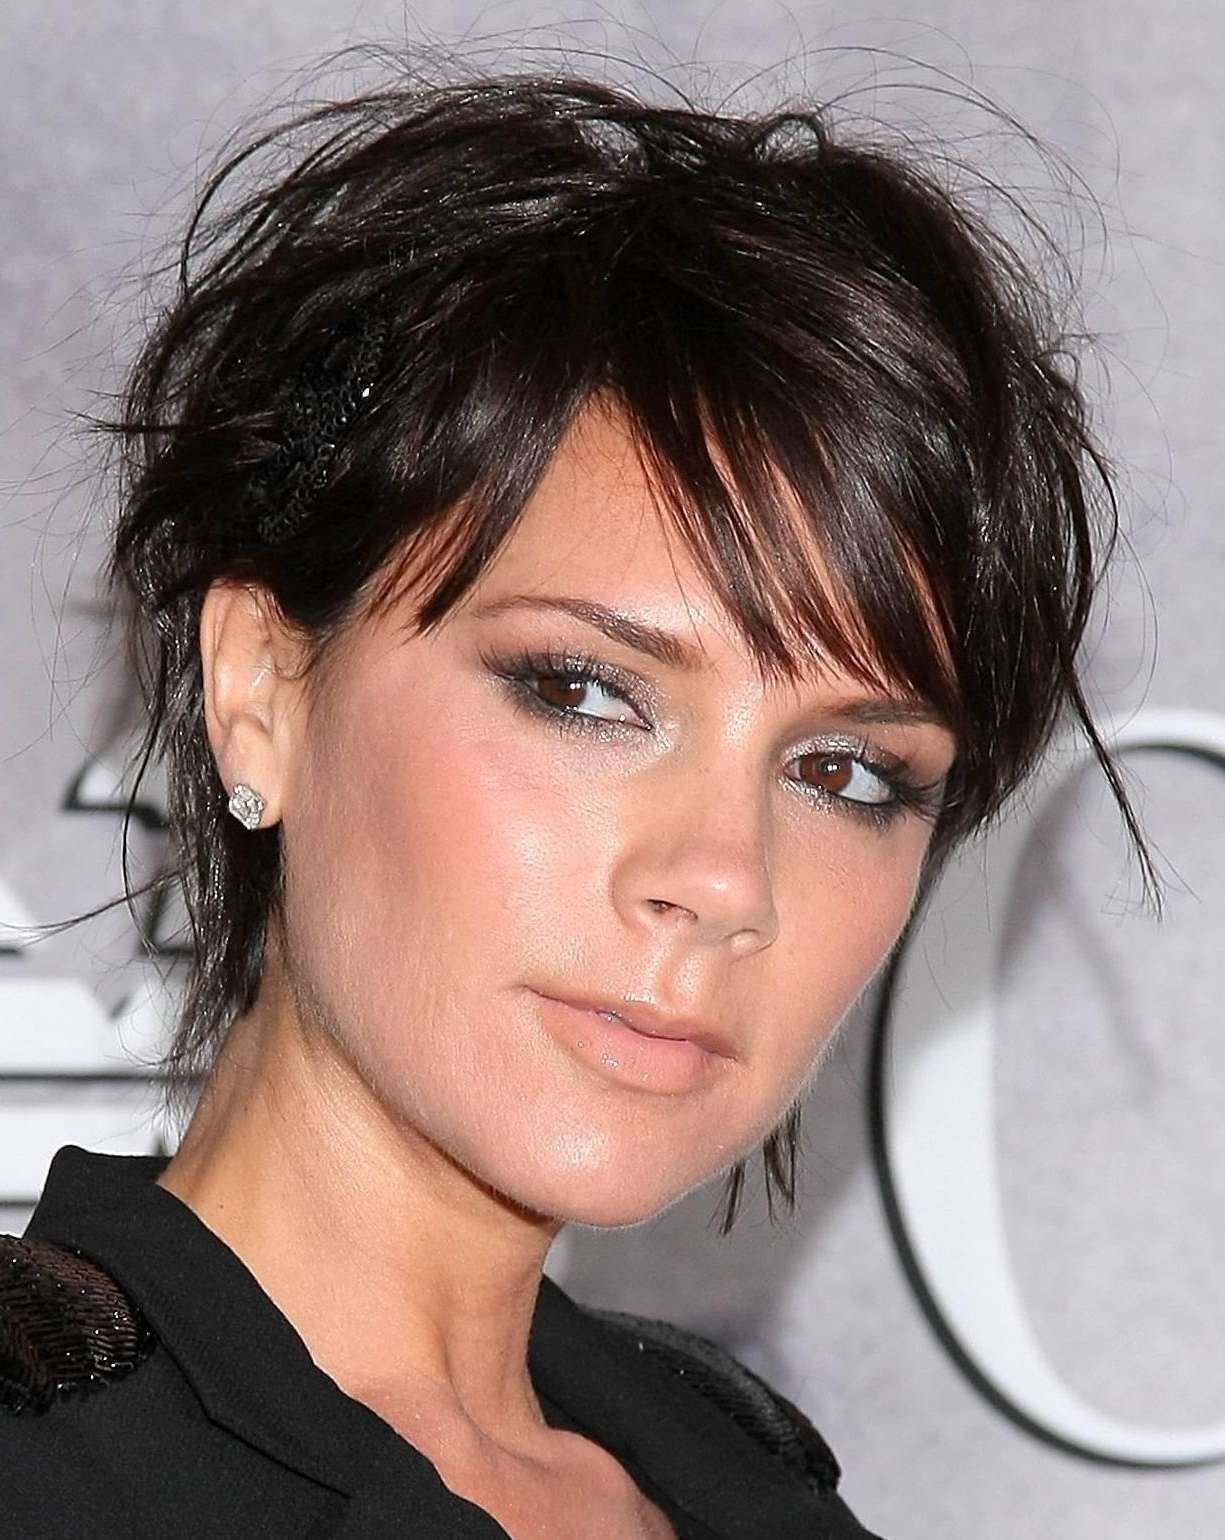 Shaggy Hairstyles For Thick Hair Choppy Short Hairstyle For Thick Throughout Well Known Mens Shaggy Hairstyles Thick Hair (View 12 of 15)